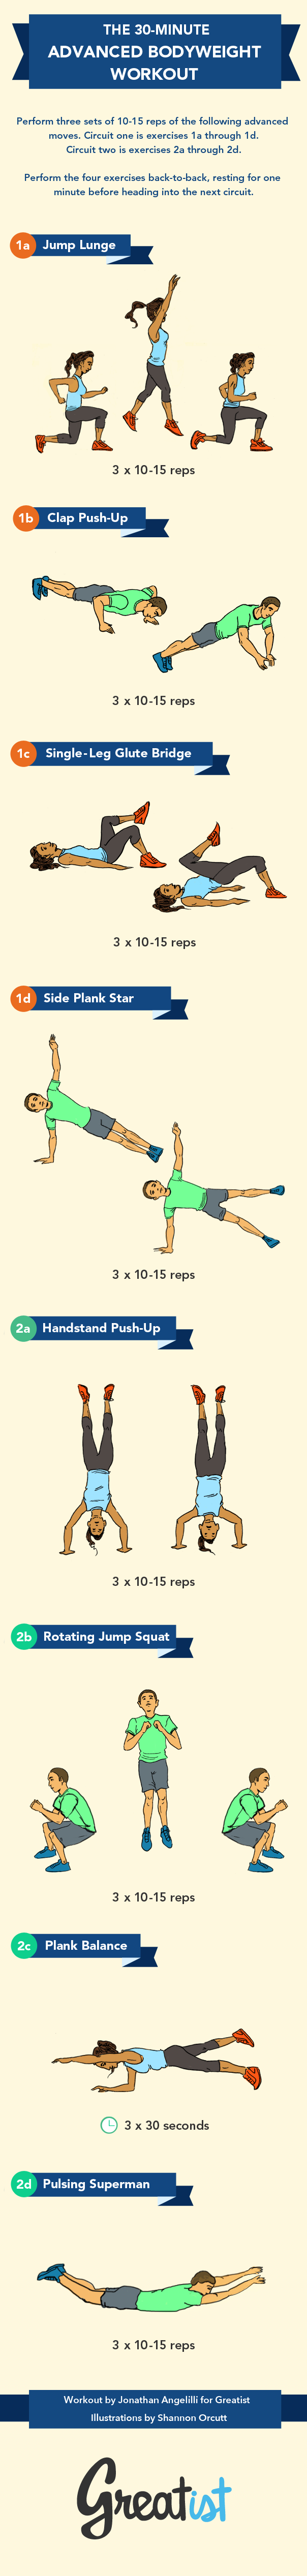 30-Minute Advanced Bodyweight Workout